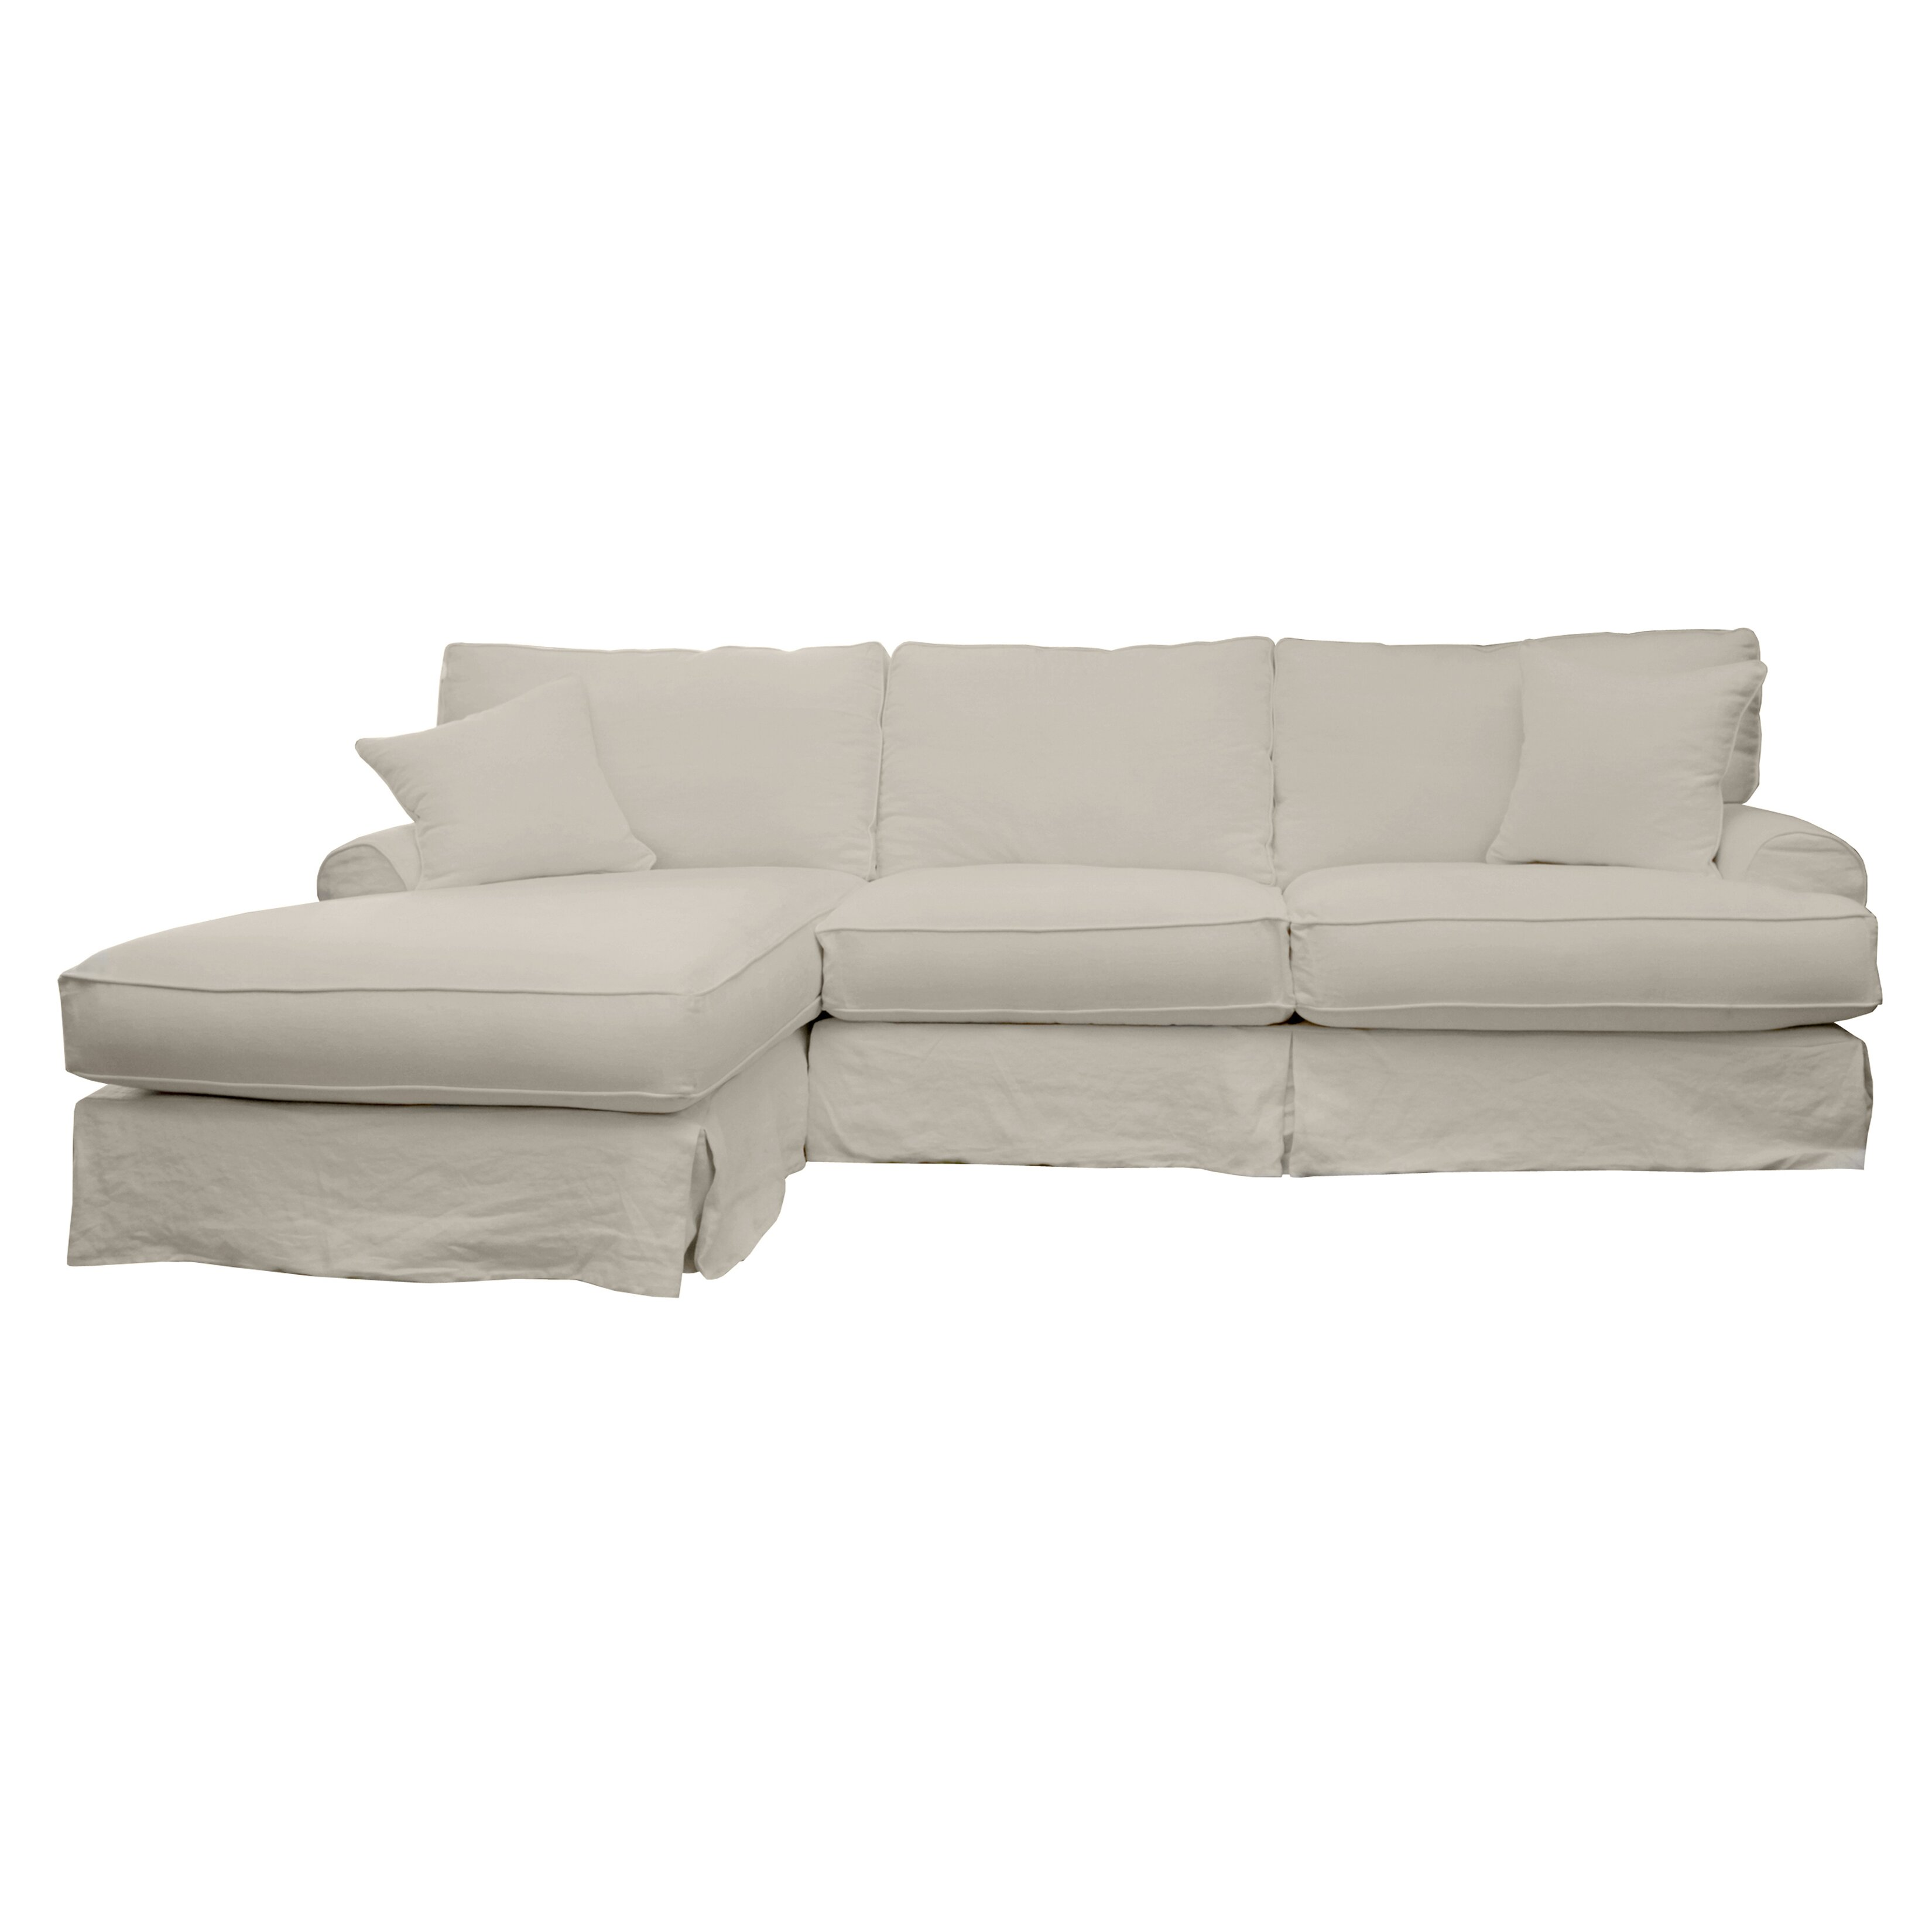 Image Result For Twin Sleeper Sofa Costco